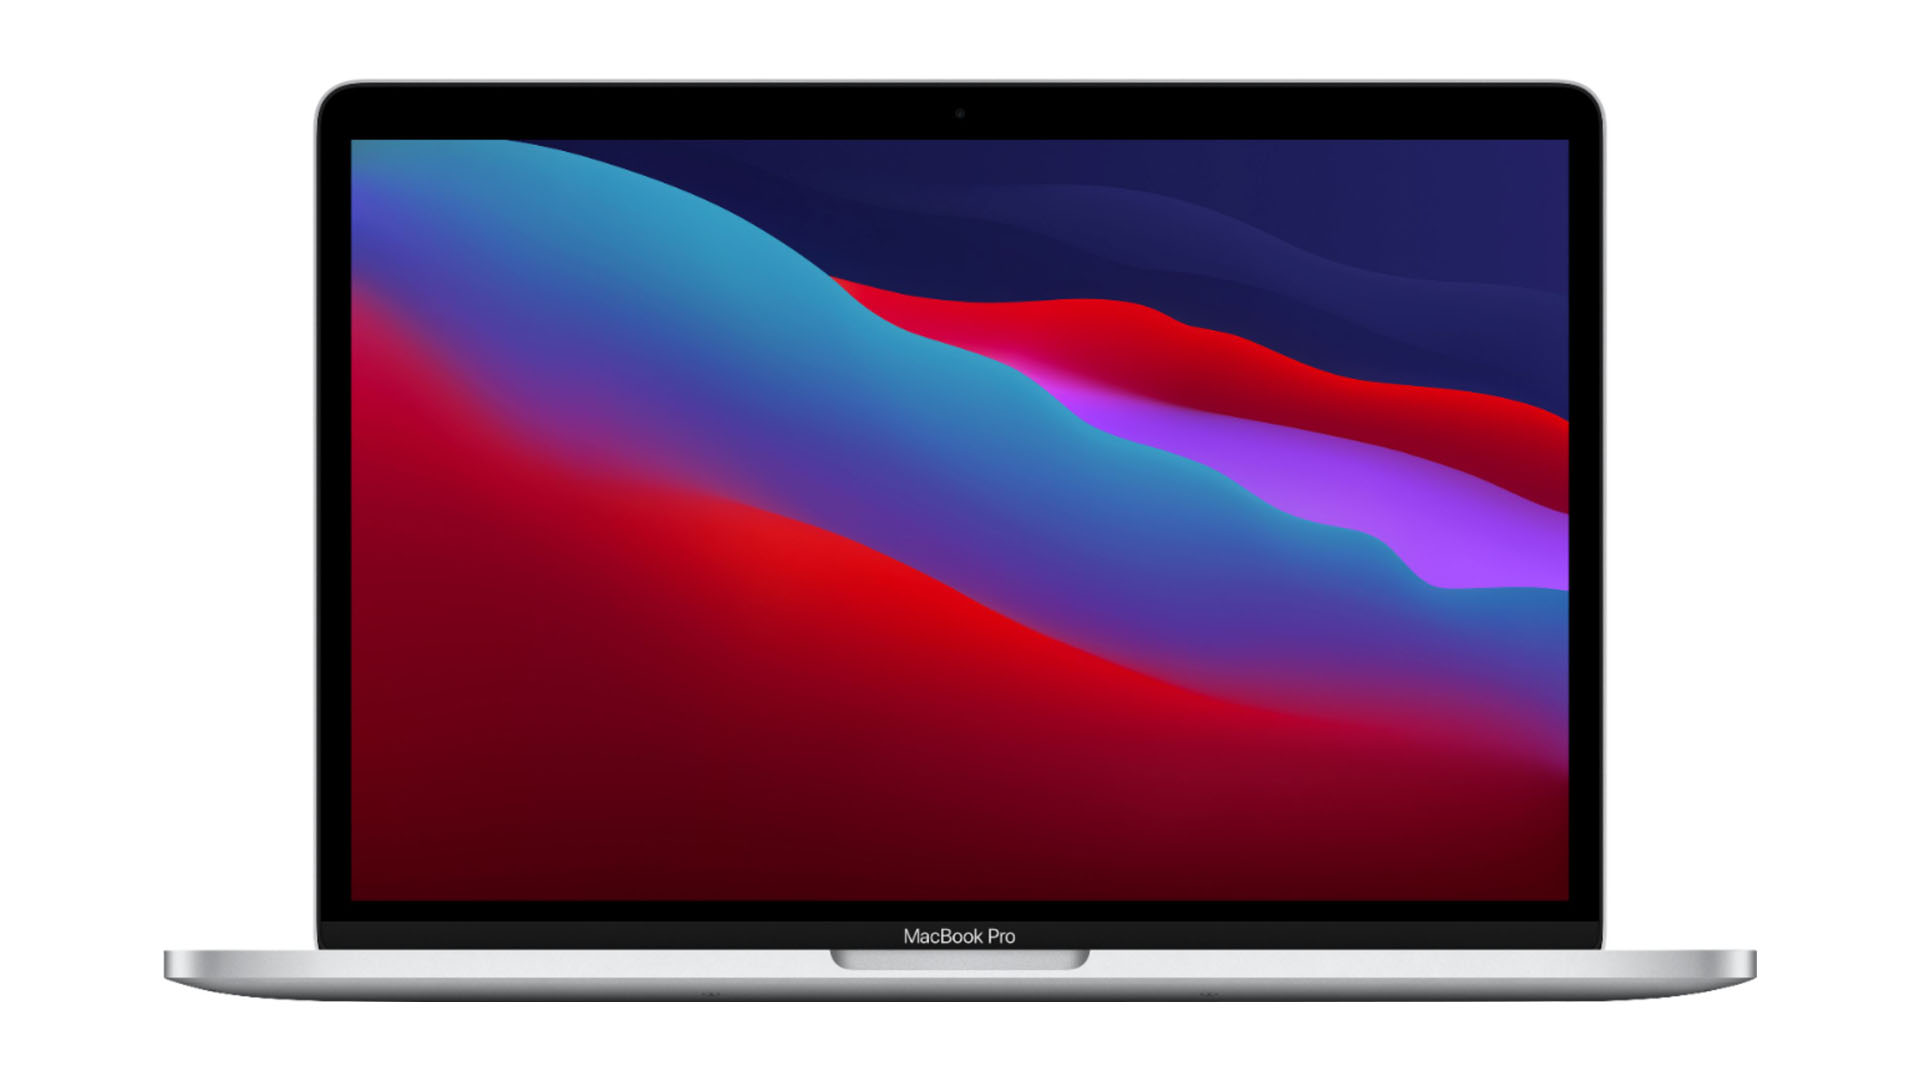 M1 MacBook Pro. Image: Apple.